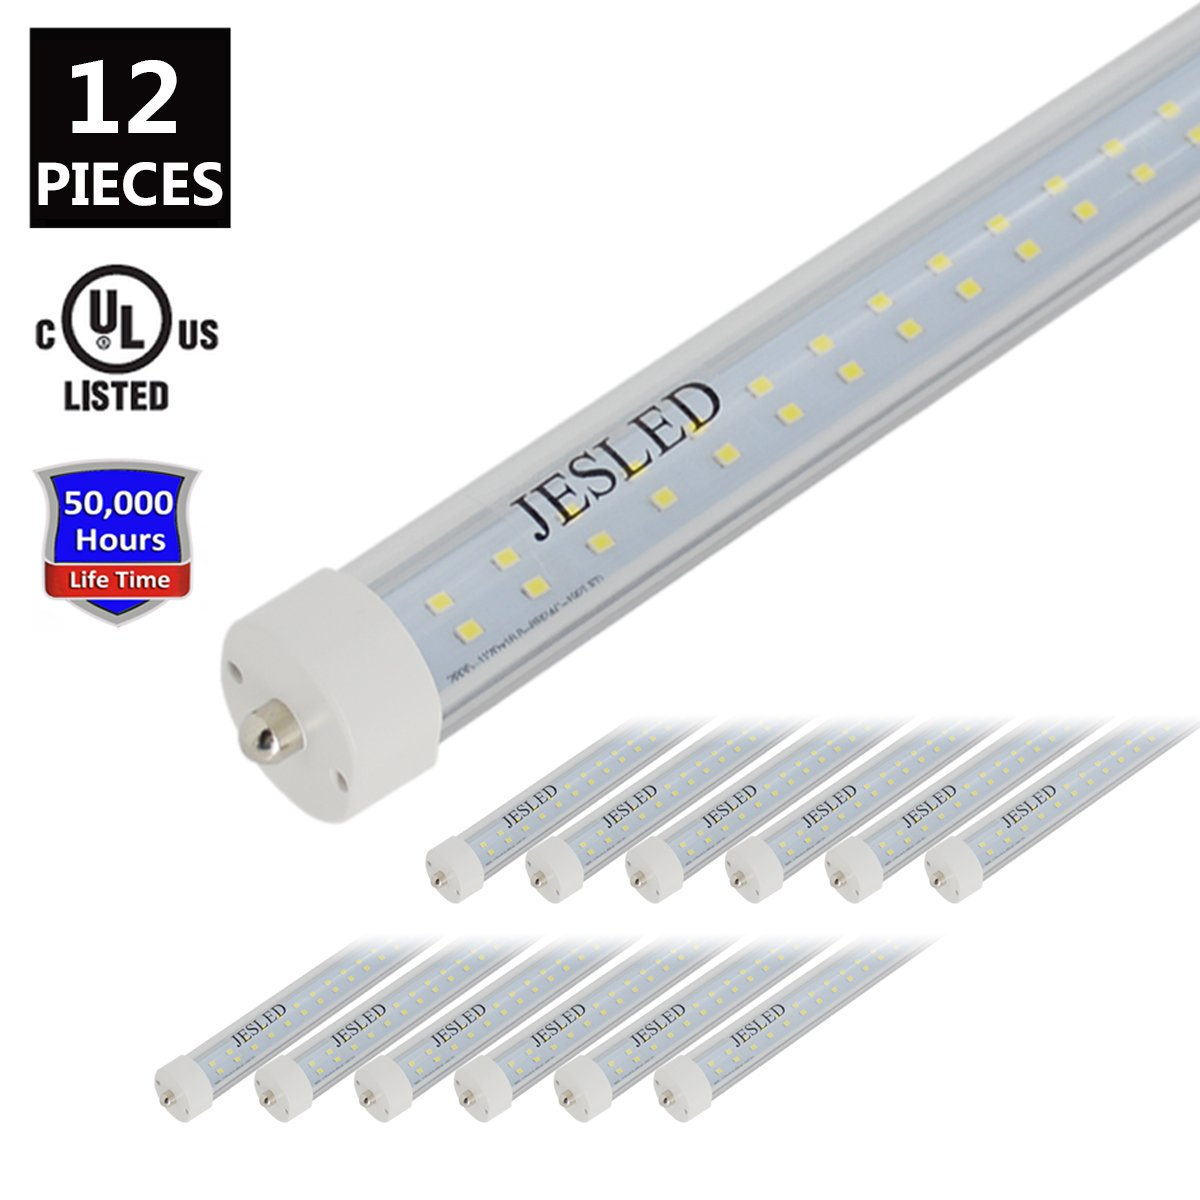 JESLED T8/T10/T12 8FT 50W LED Tube Light, Single Pin FA8 Base, 5000K Daylight White, 6000 Lumens, 8 Foot Fluorescent Bulbs (130W Replacement), Clear Cover, Dual-Ended Power (12-Pack)